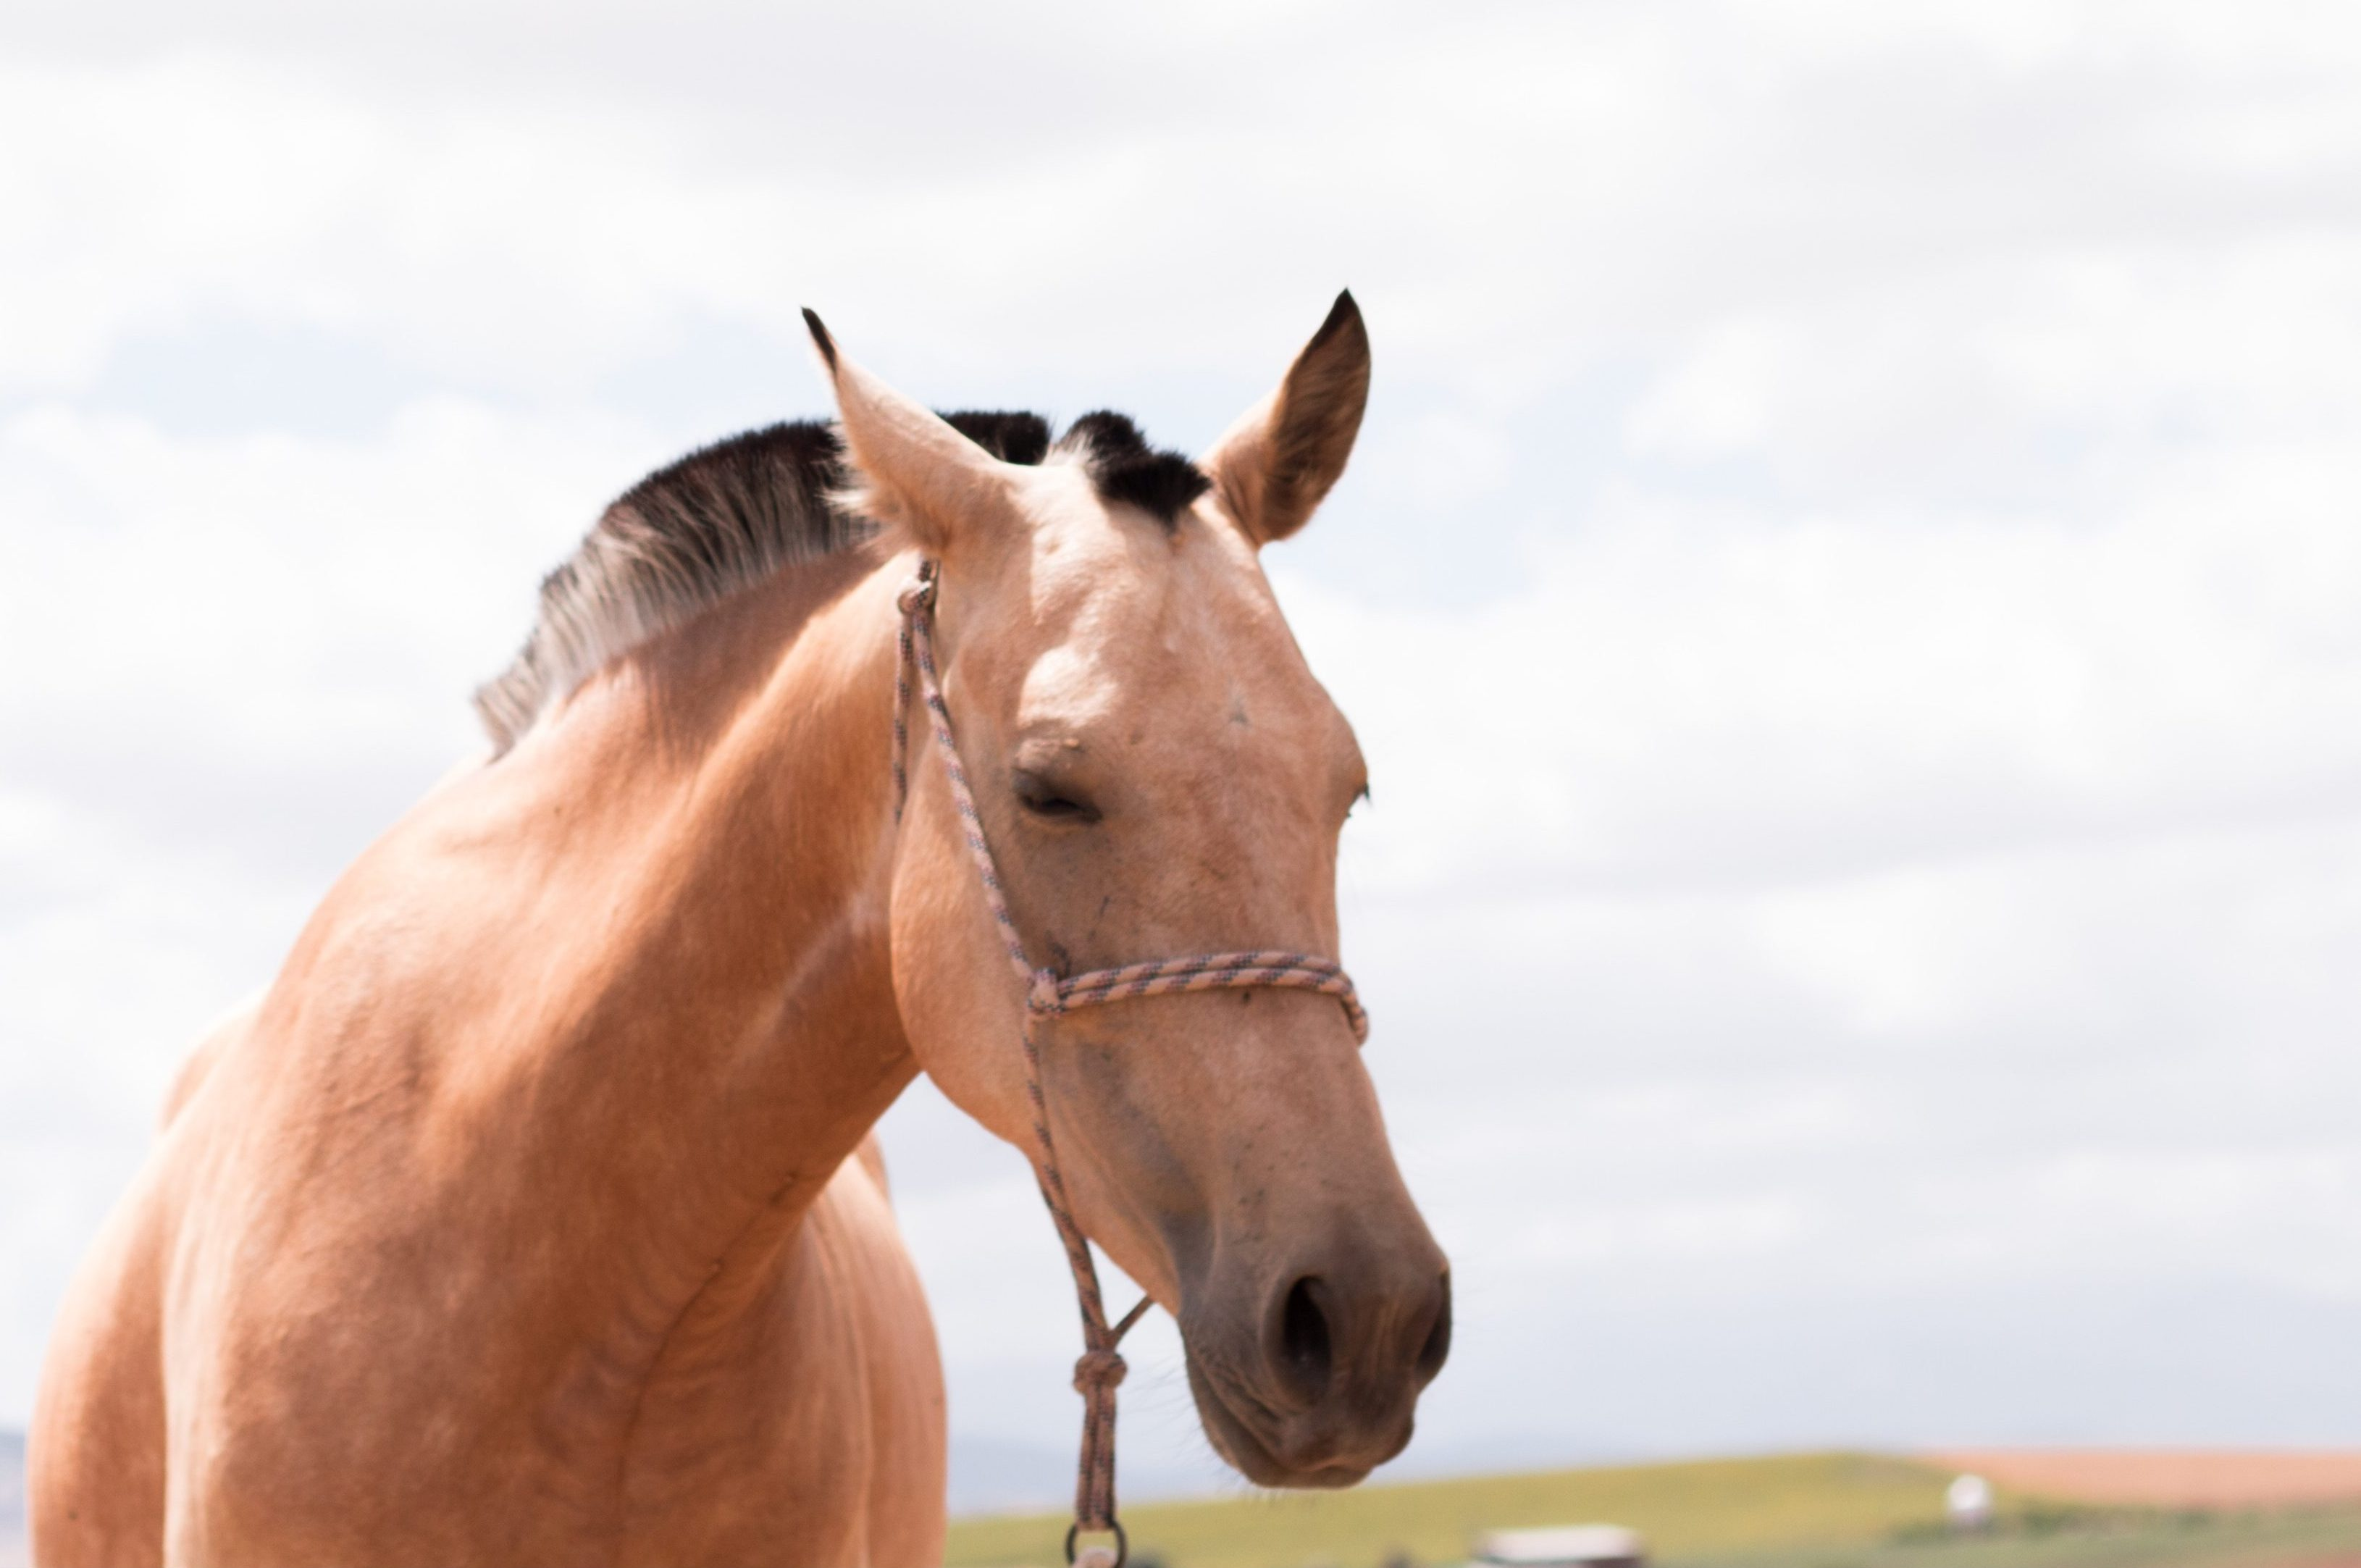 Equine-assisted therapy offers survivors a low-stress, yet powerful channel to heal from trauma.